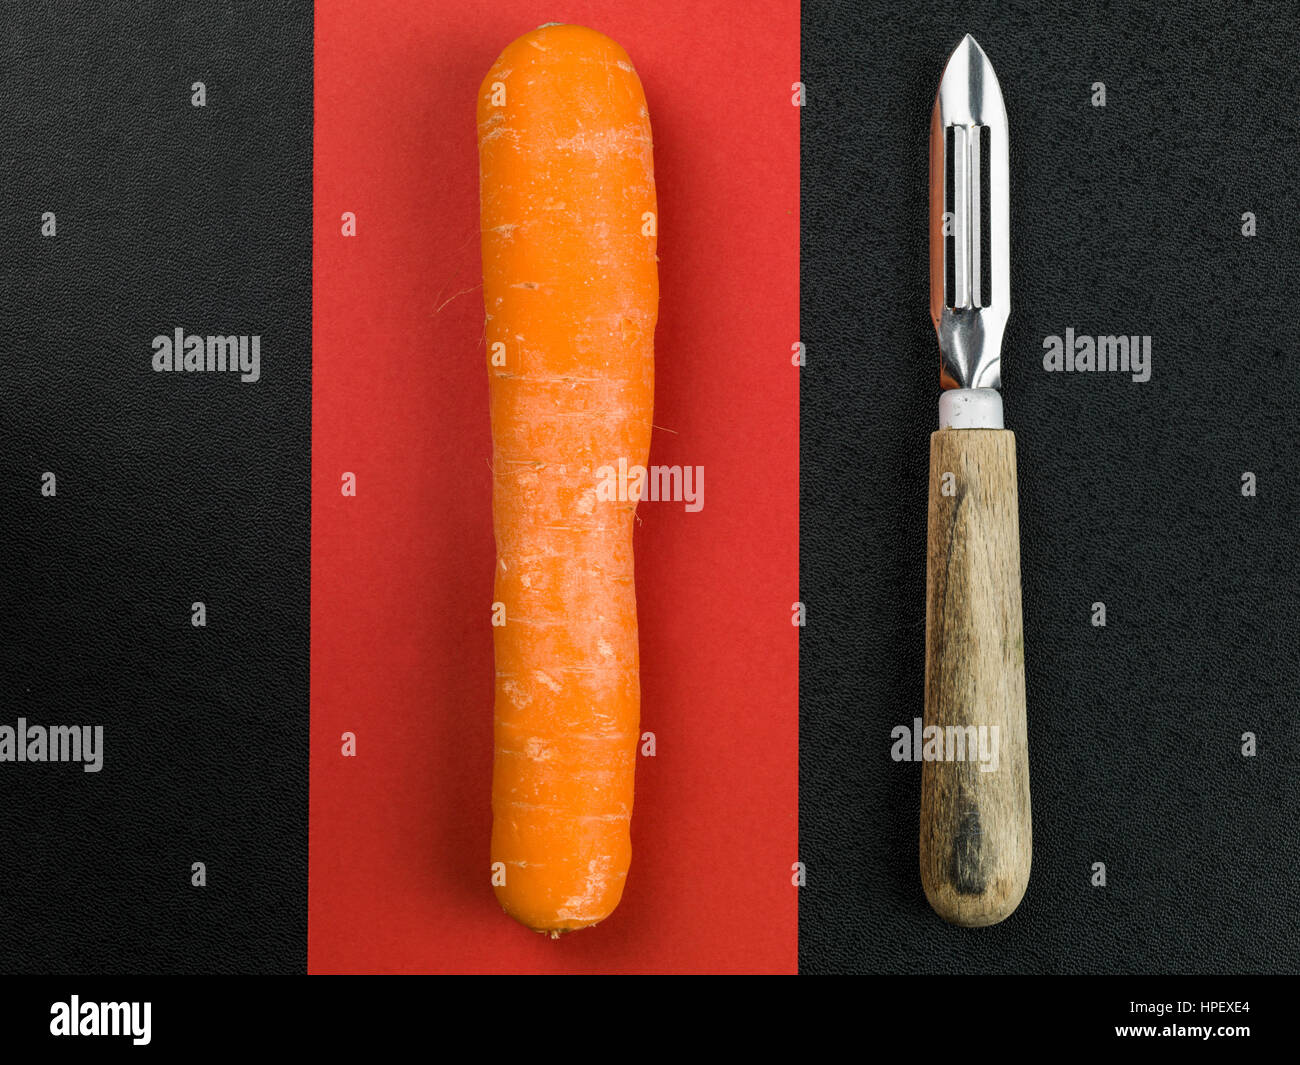 Raw Carrot With a Wooden Handled Vegetable Peeler - Stock Image